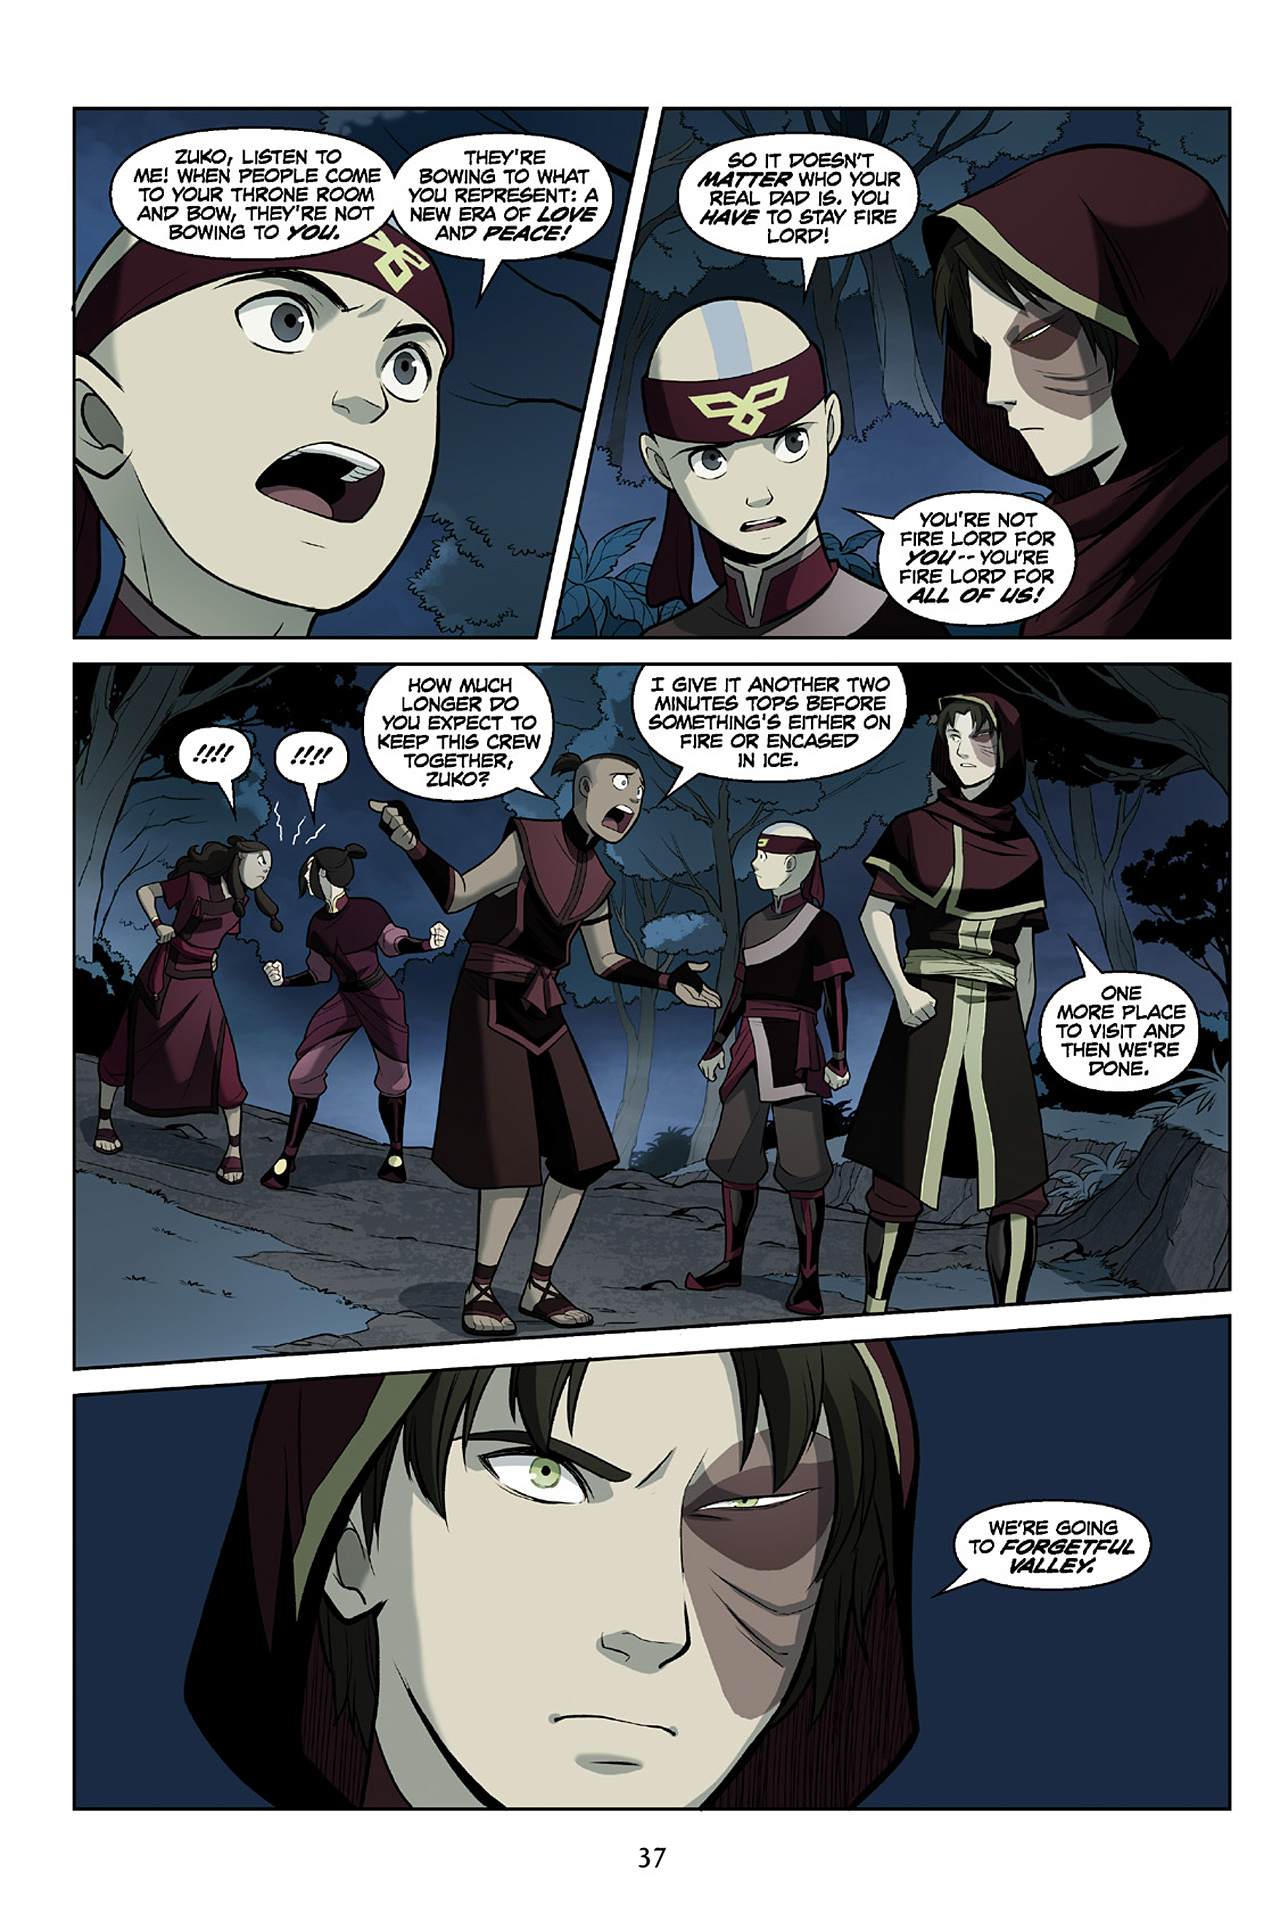 Read online Nickelodeon Avatar: The Last Airbender - The Search comic -  Issue # Part 2 - 38